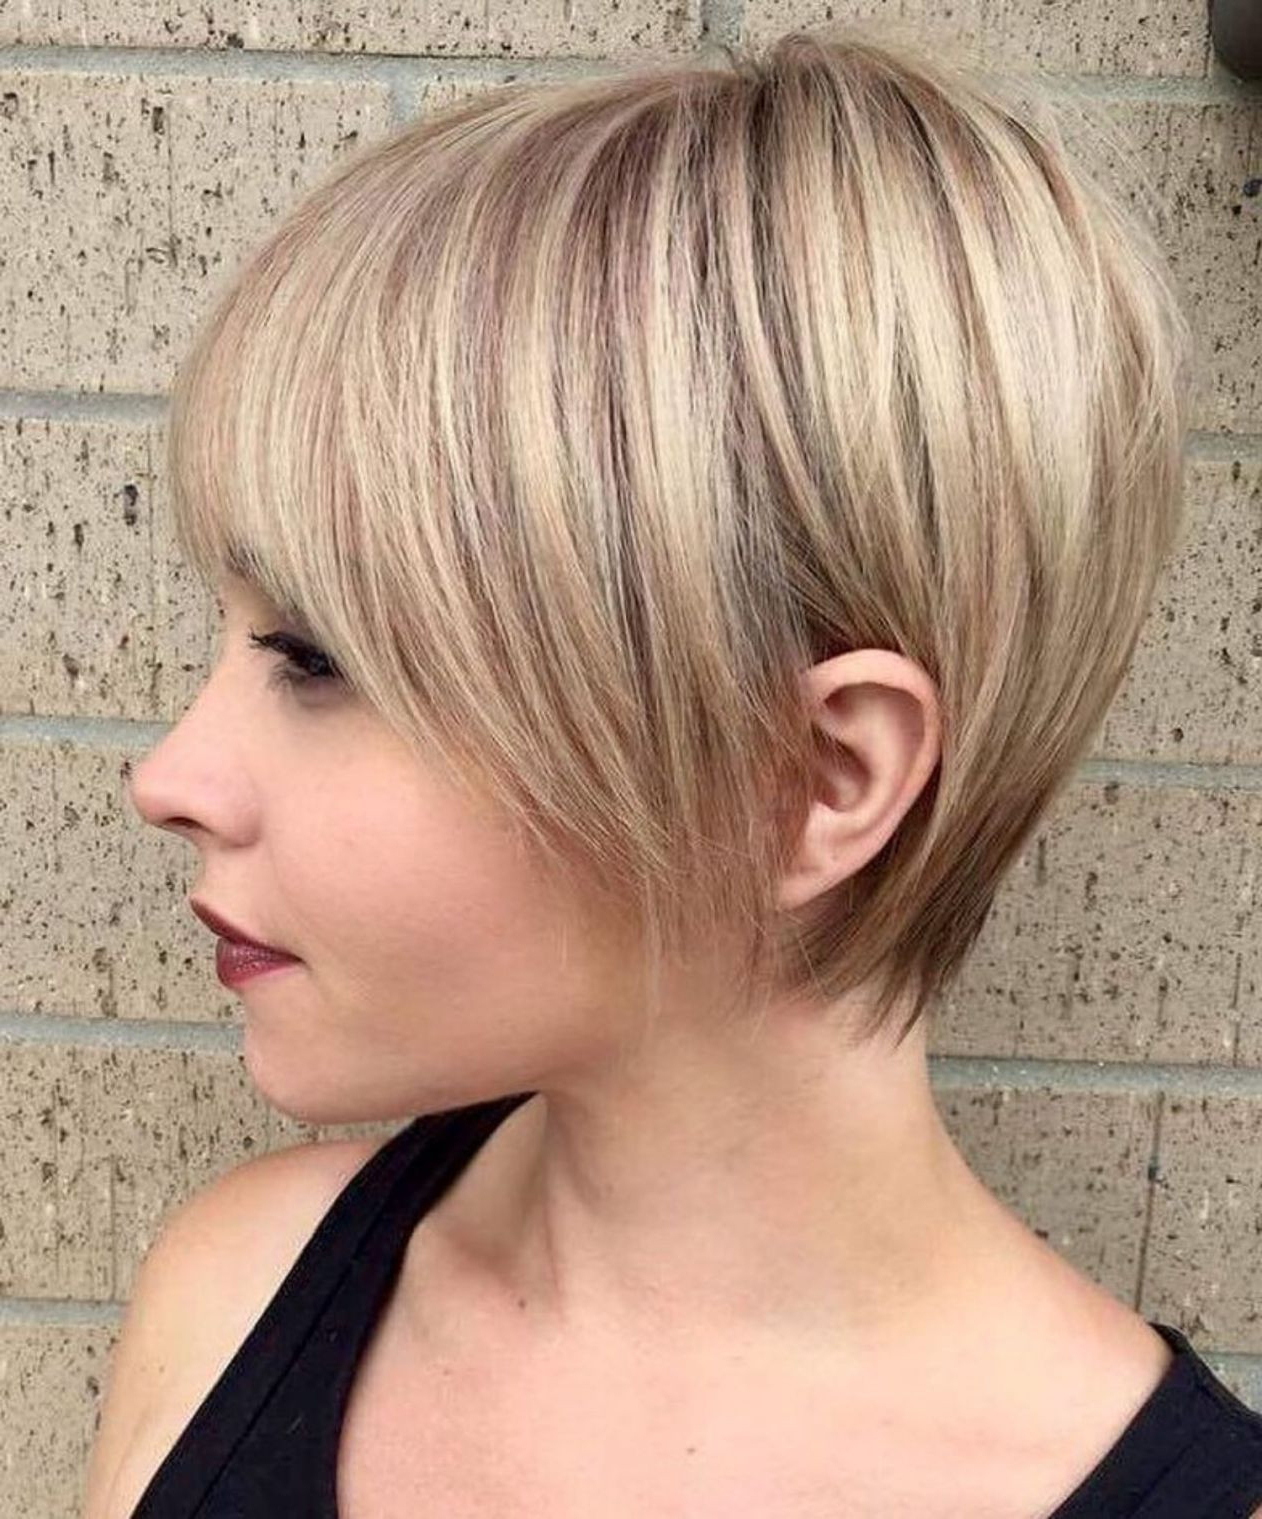 Luxury Short Hairstyles For Fat Faces And Thin Hair With Layered Short Hairstyles For Round Faces (View 6 of 20)